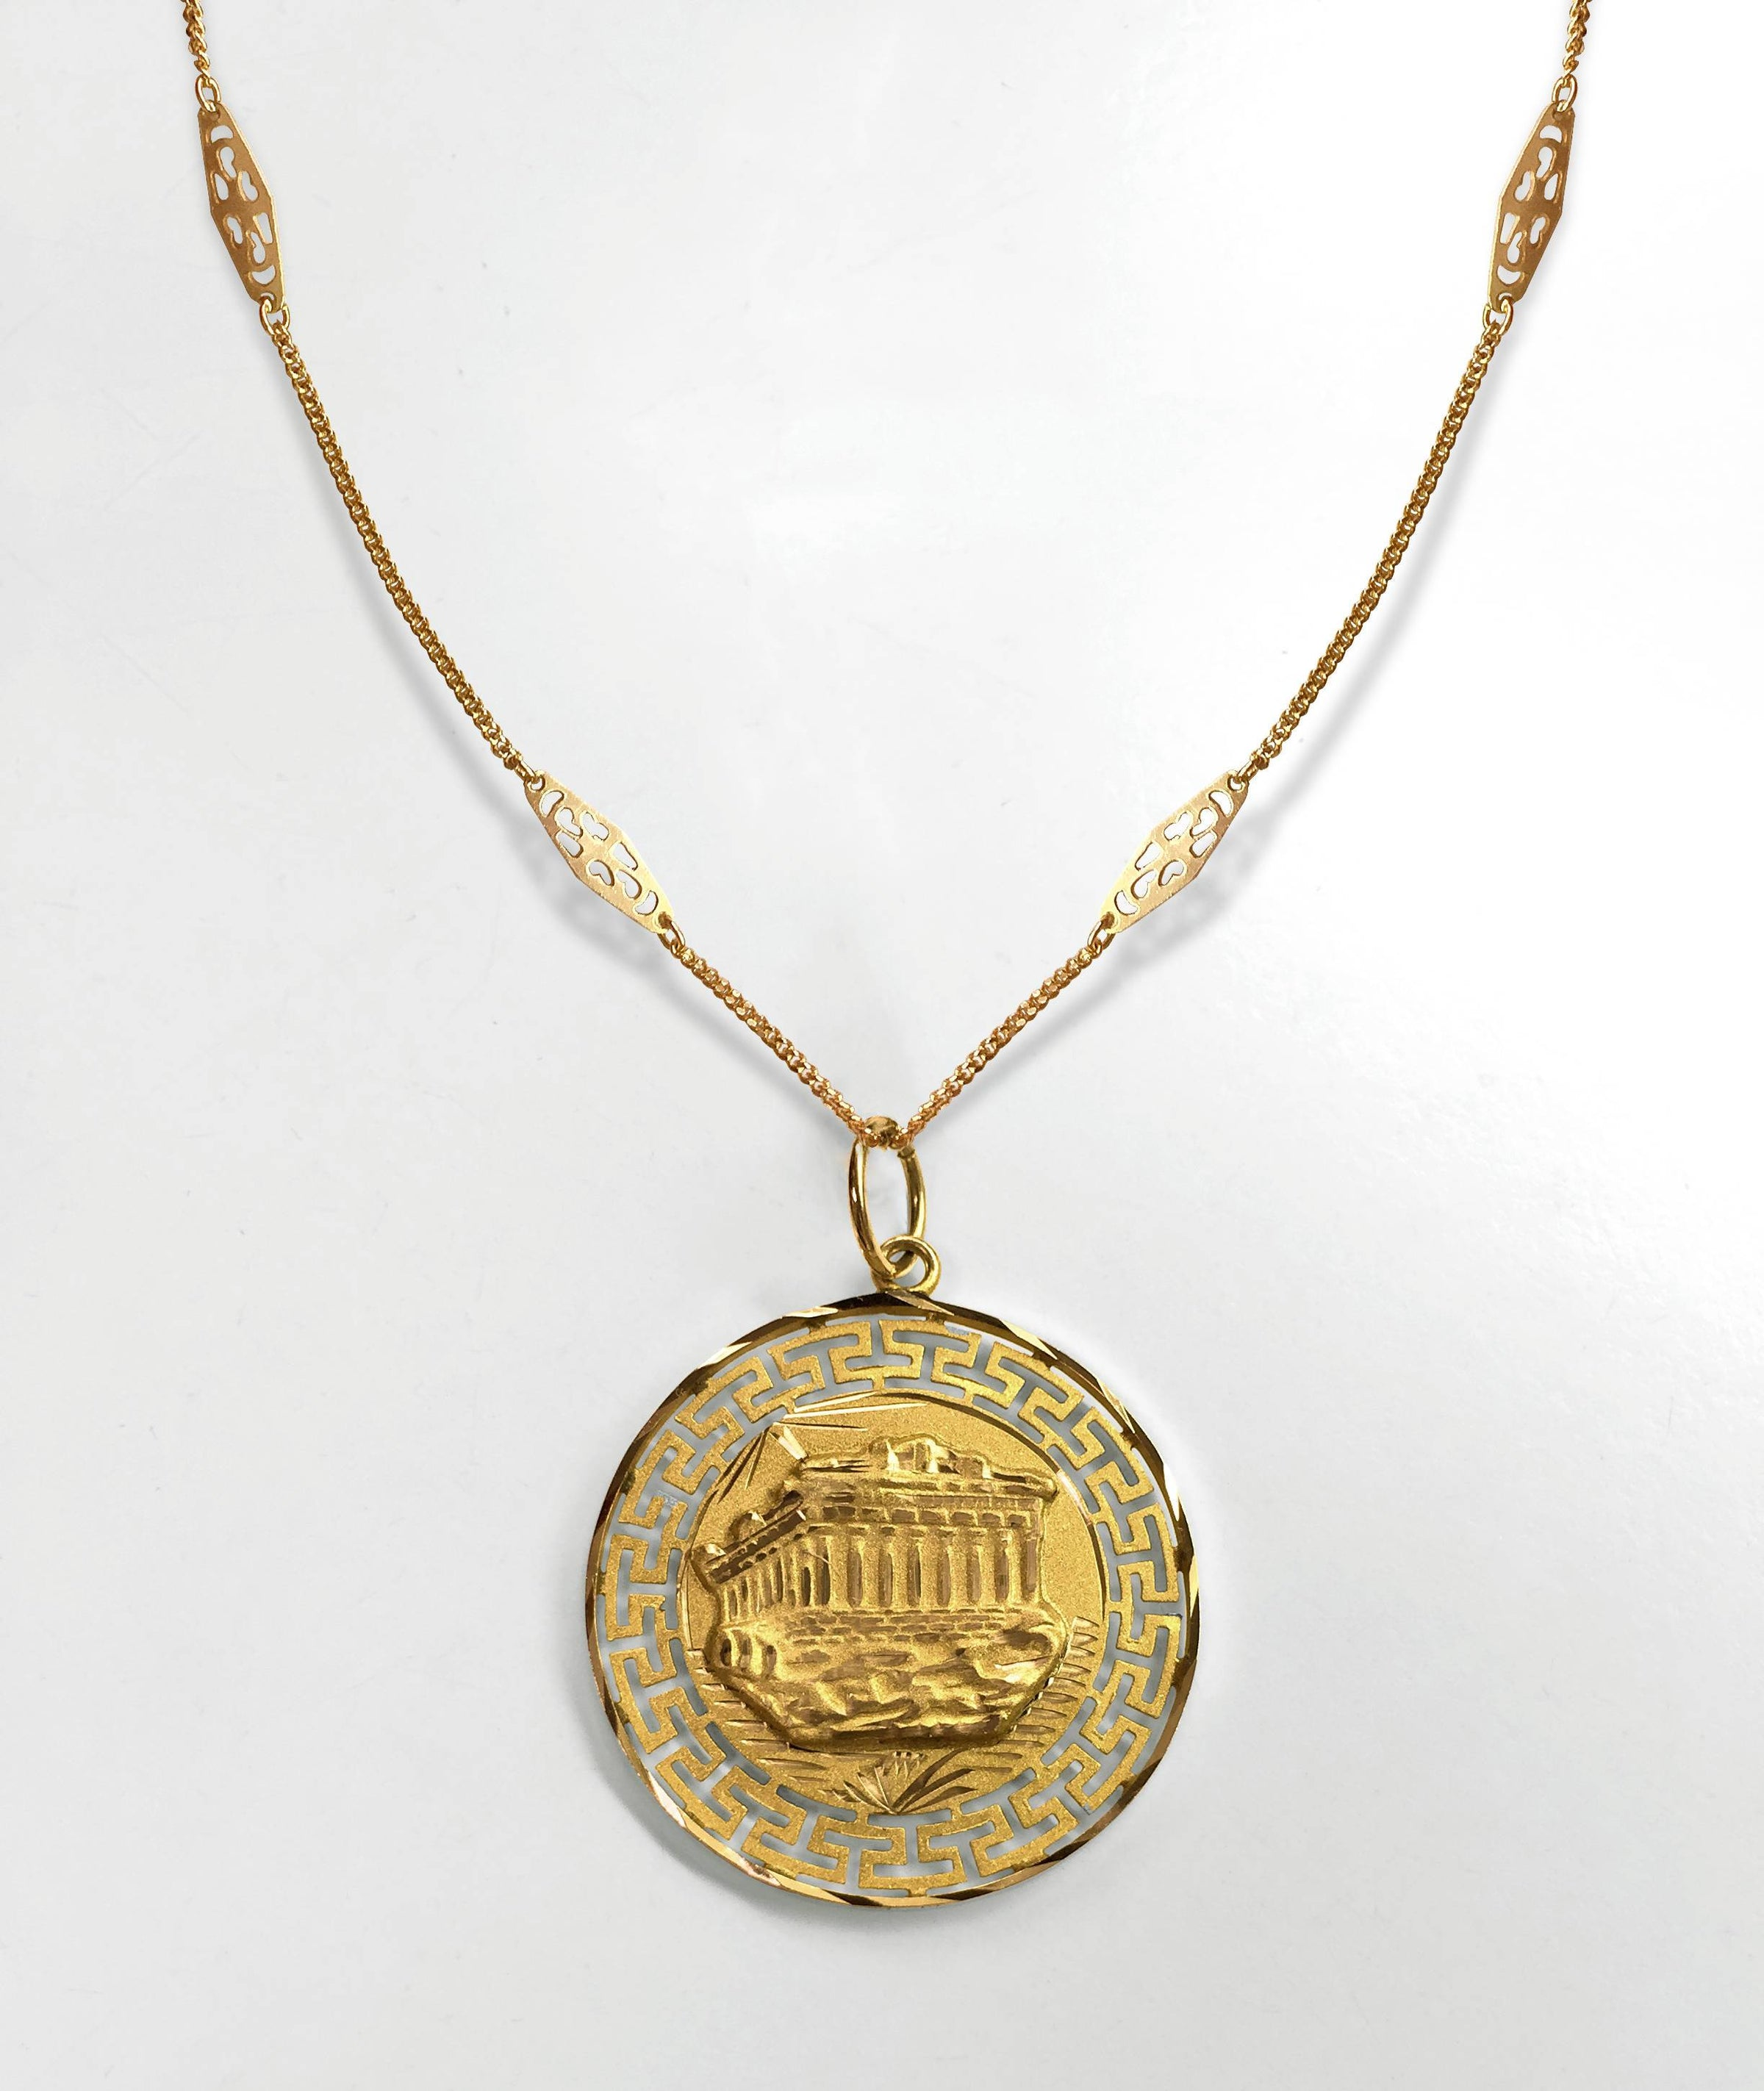 Gifts Ideas The Motif Divine Necklace Greek Necklace Anniversary Gifts Ancient Jewelry Gold Coin Necklace Pamela Card 24K Gold Plated